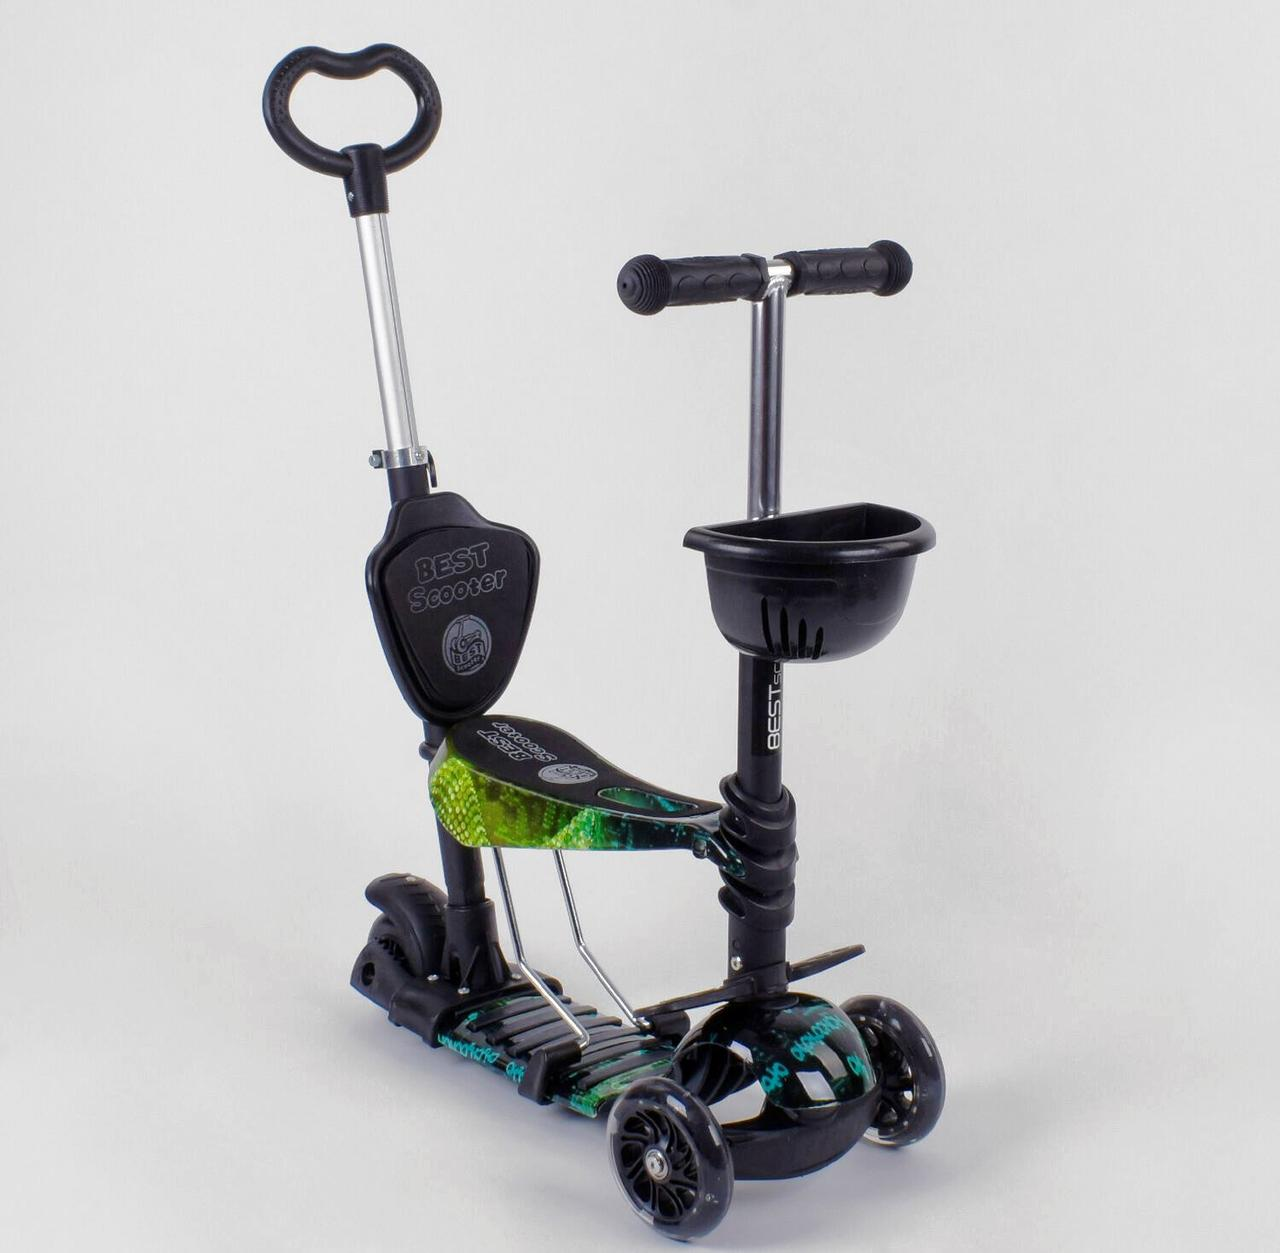 Самокат Best Scooter 5 в 1 Абстракция 10999 подсветка колес